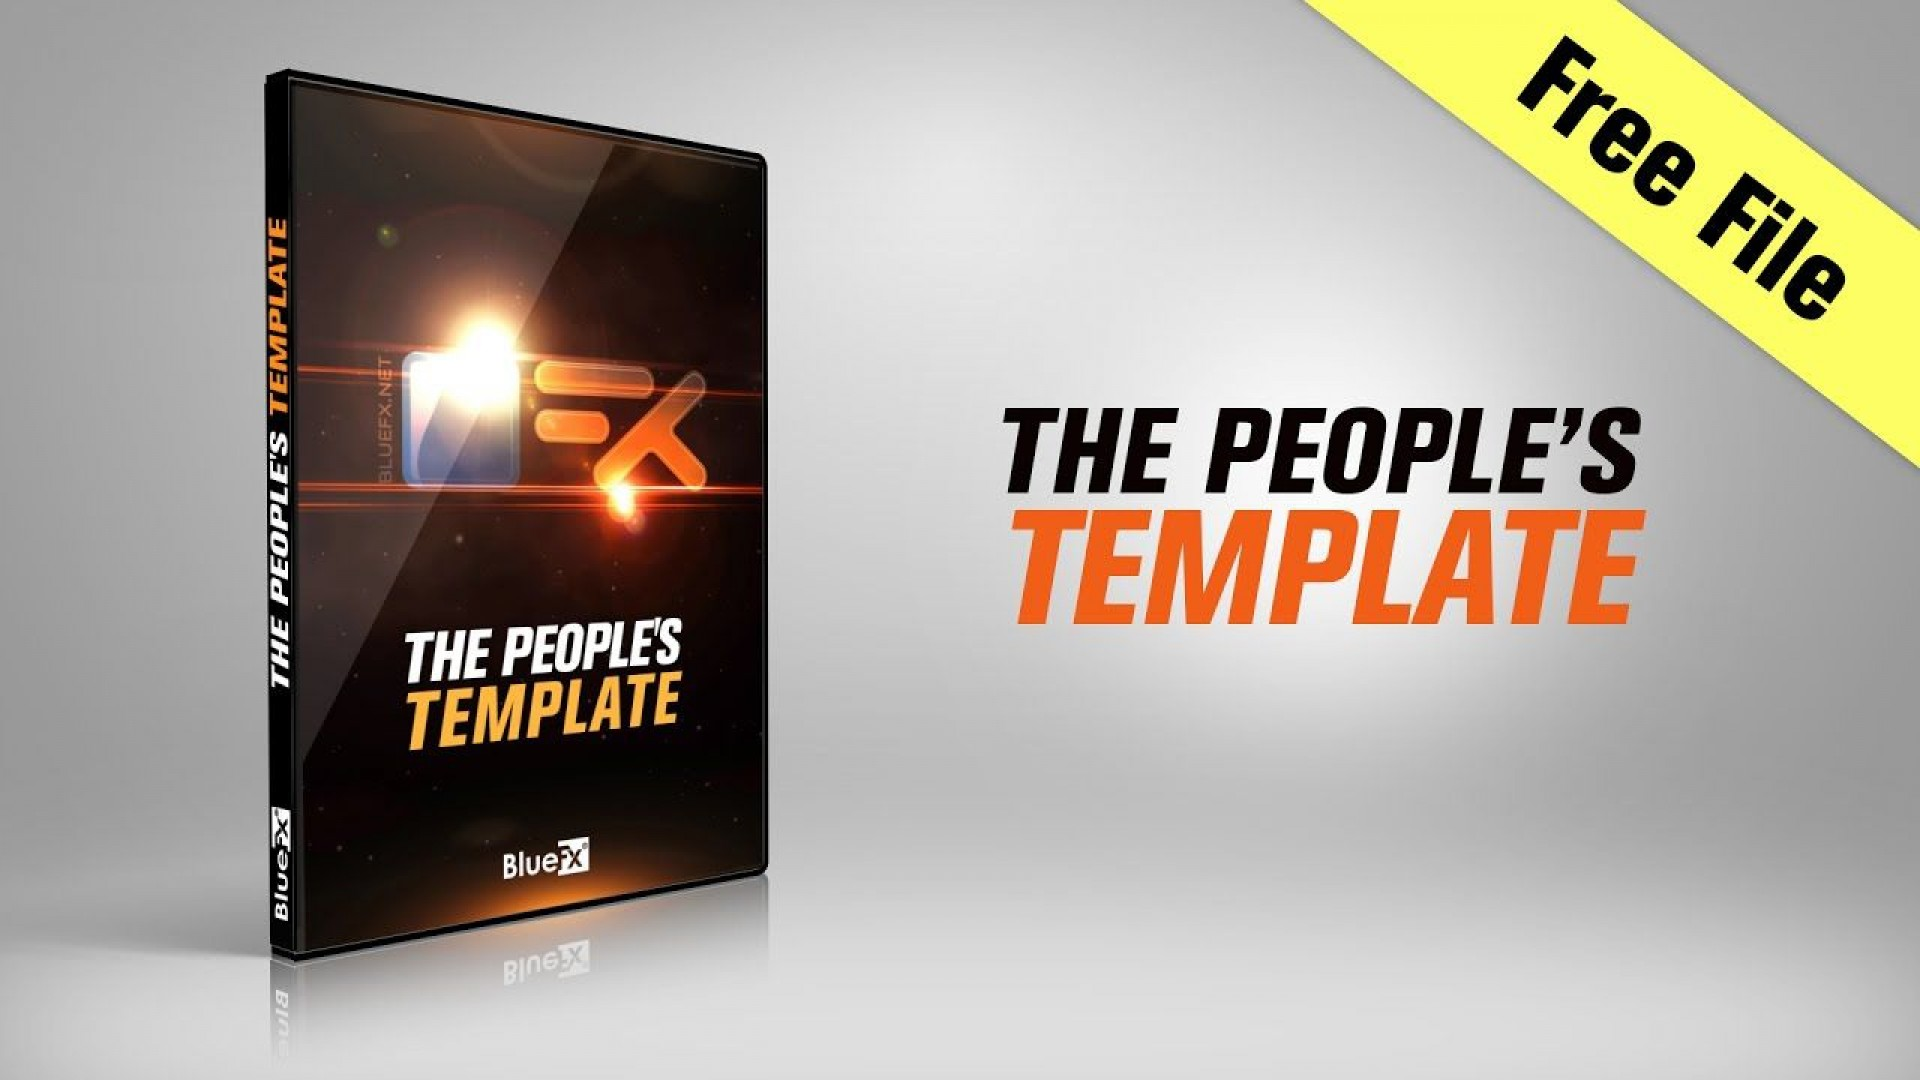 003 Surprising Free After Effect 3d Template Design  Templates Photo Slideshow Videohive Flag Collection –1920